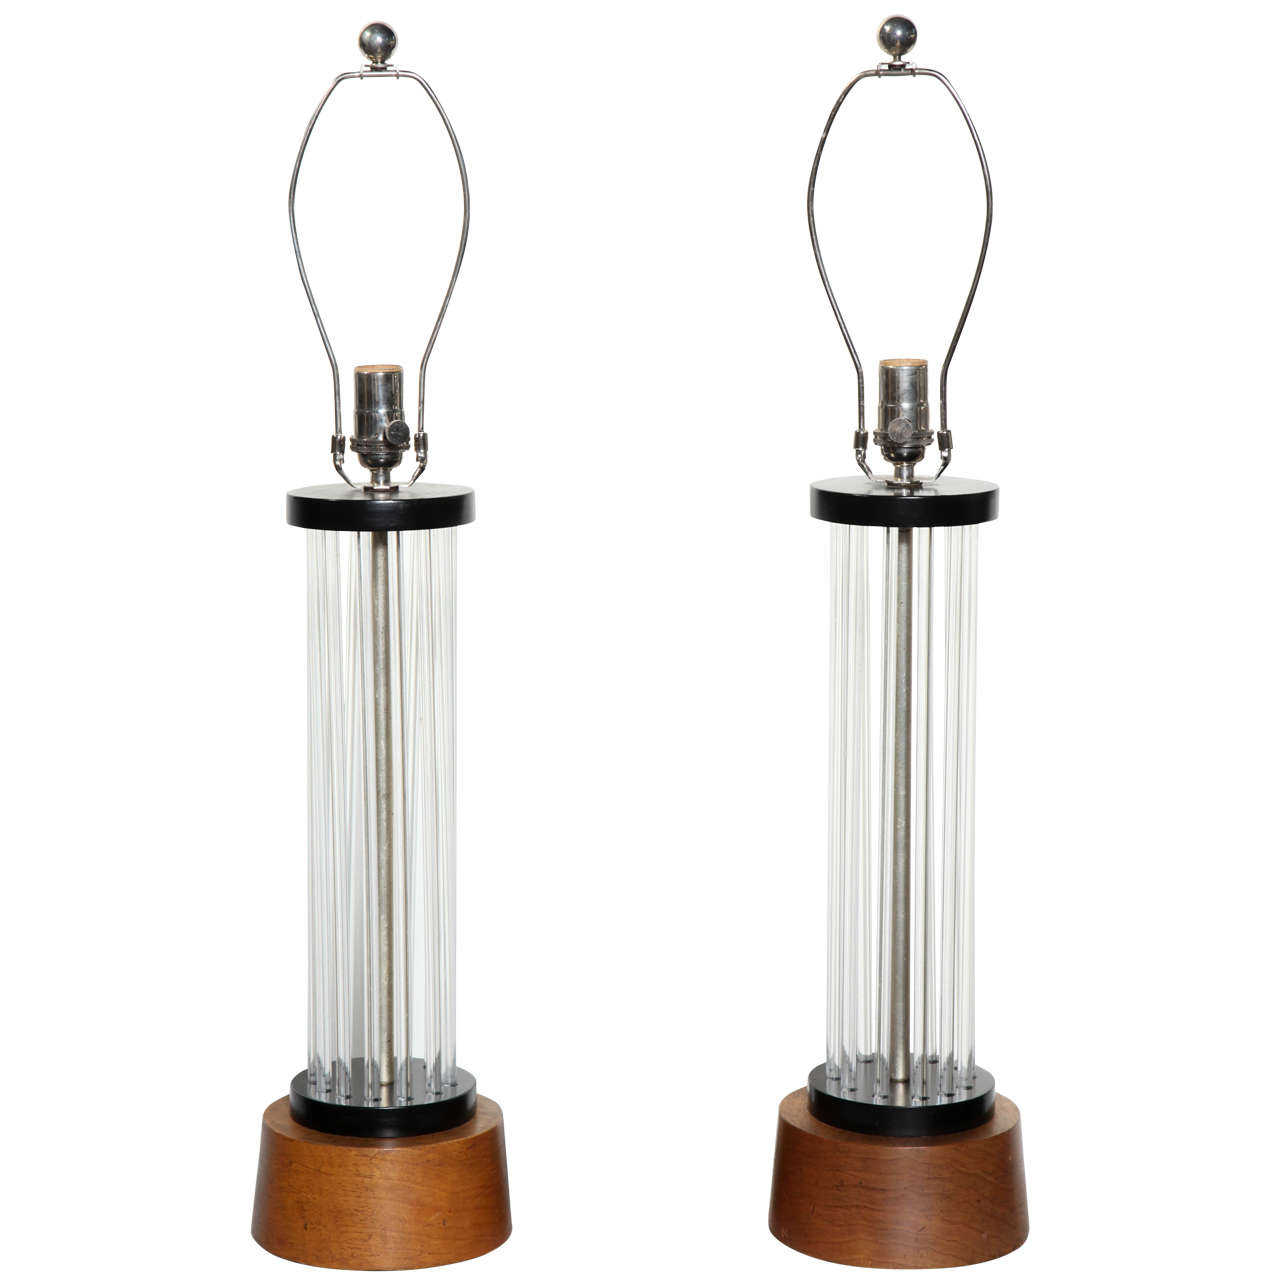 Pair of Clear Lucite Rod, Black Enamel and Walnut Column Table Lamps, C. 1940